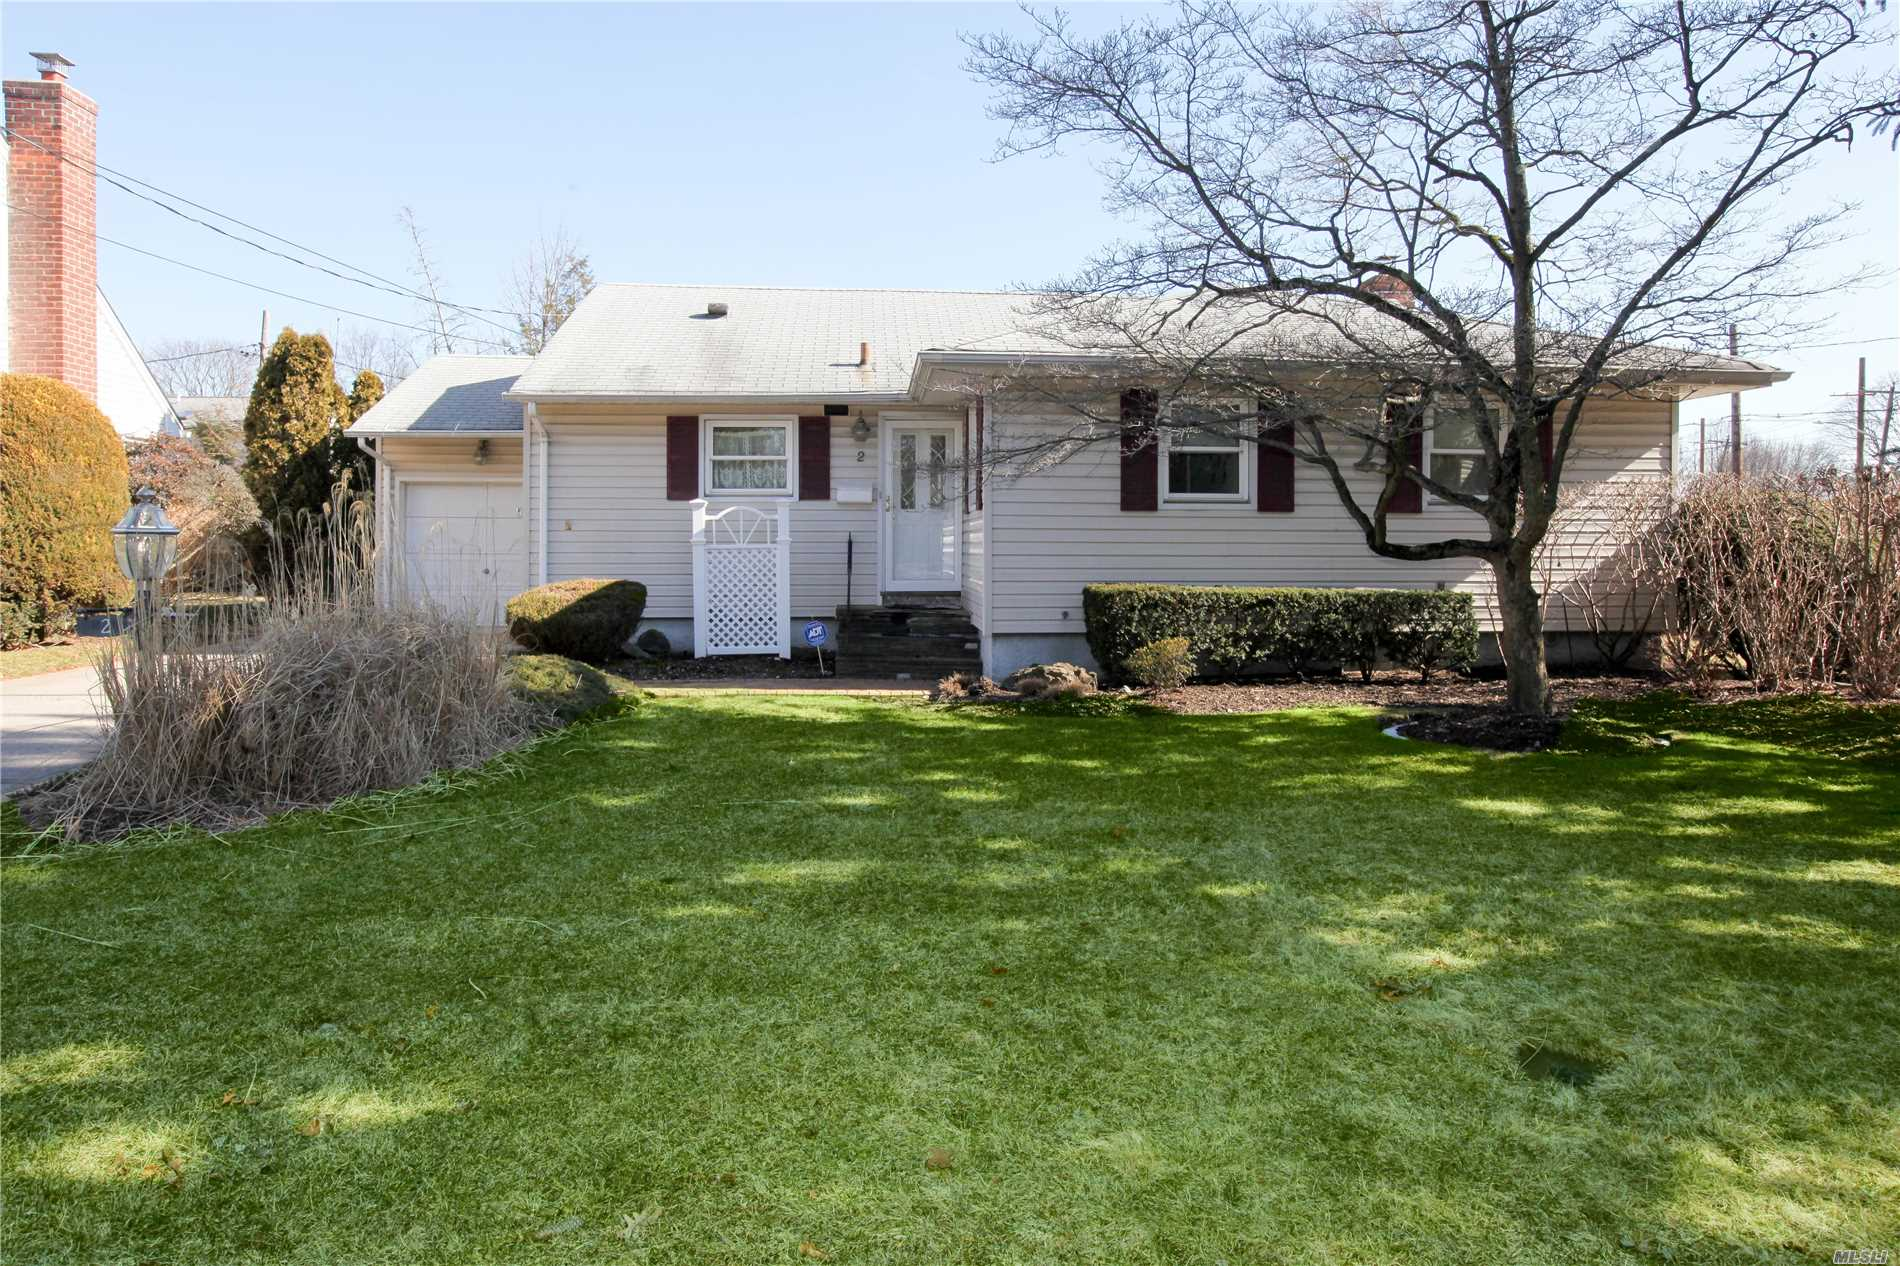 Pristine And Clean Describe This 3 Bedroom Ranch. This Home Has Been Well Cared For And In The Heart Of Syosset. Large Sunlit Rooms, Gleaming Hardwood Floors And A Full Finished Basement With A Separate Utility/Laundry Area. Large Private Backyard With Room For A Pool. Great Starter Or Downsizer Home. Near Shopping, Restaurants And Train.